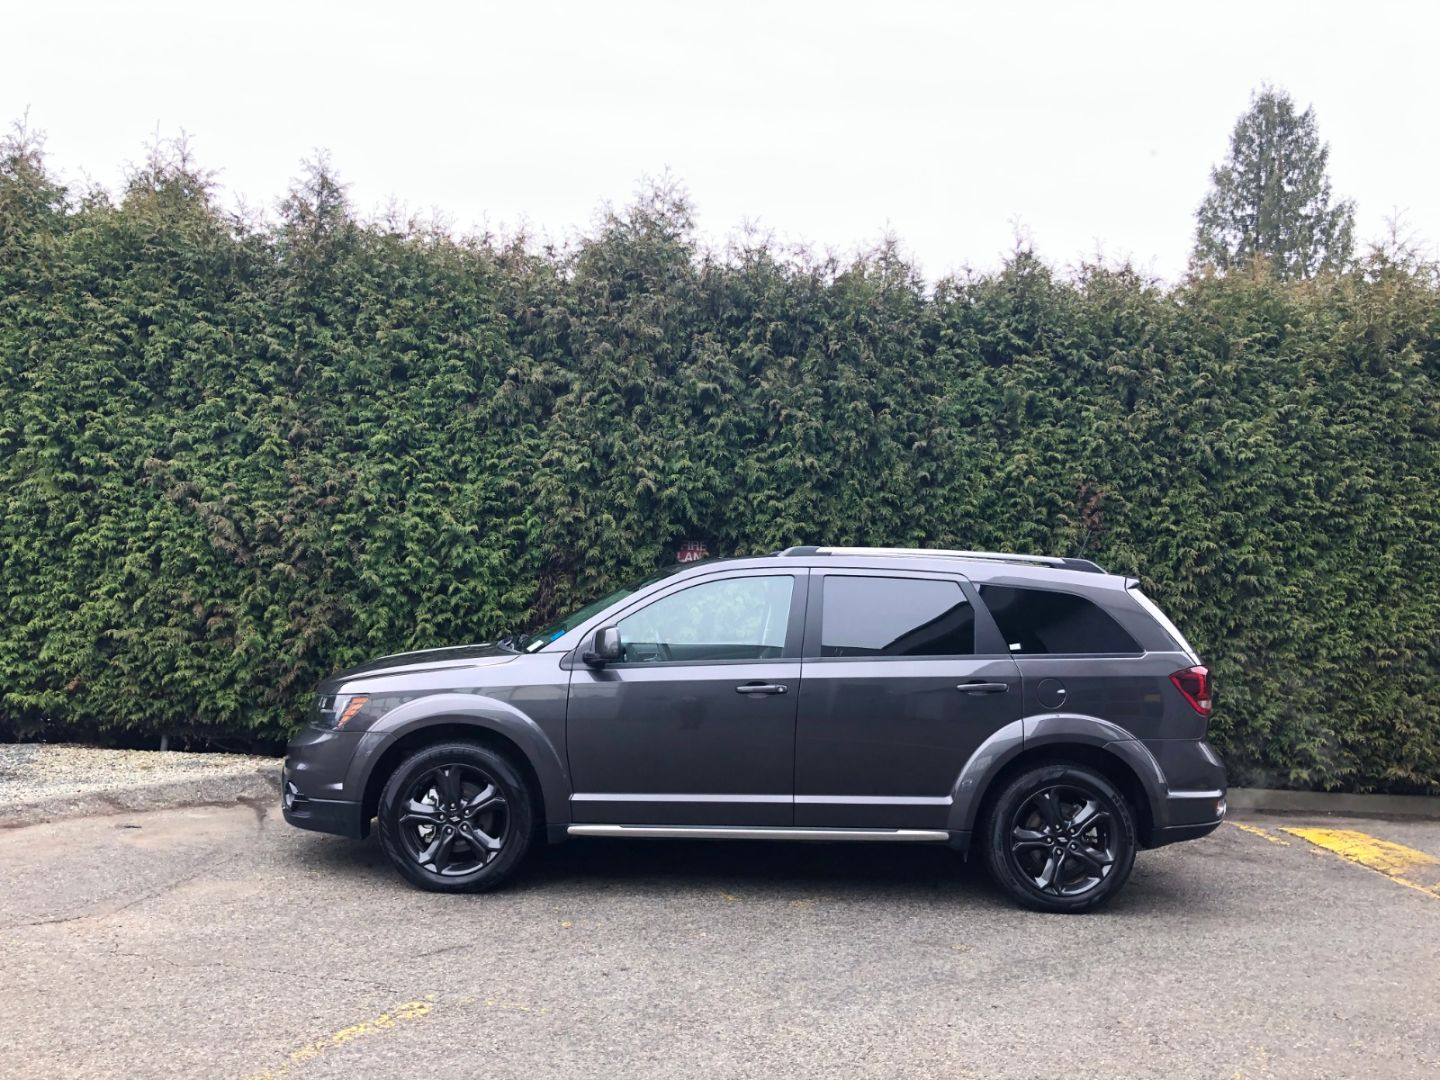 2019 Dodge Journey Crossroad for sale in Surrey, British Columbia